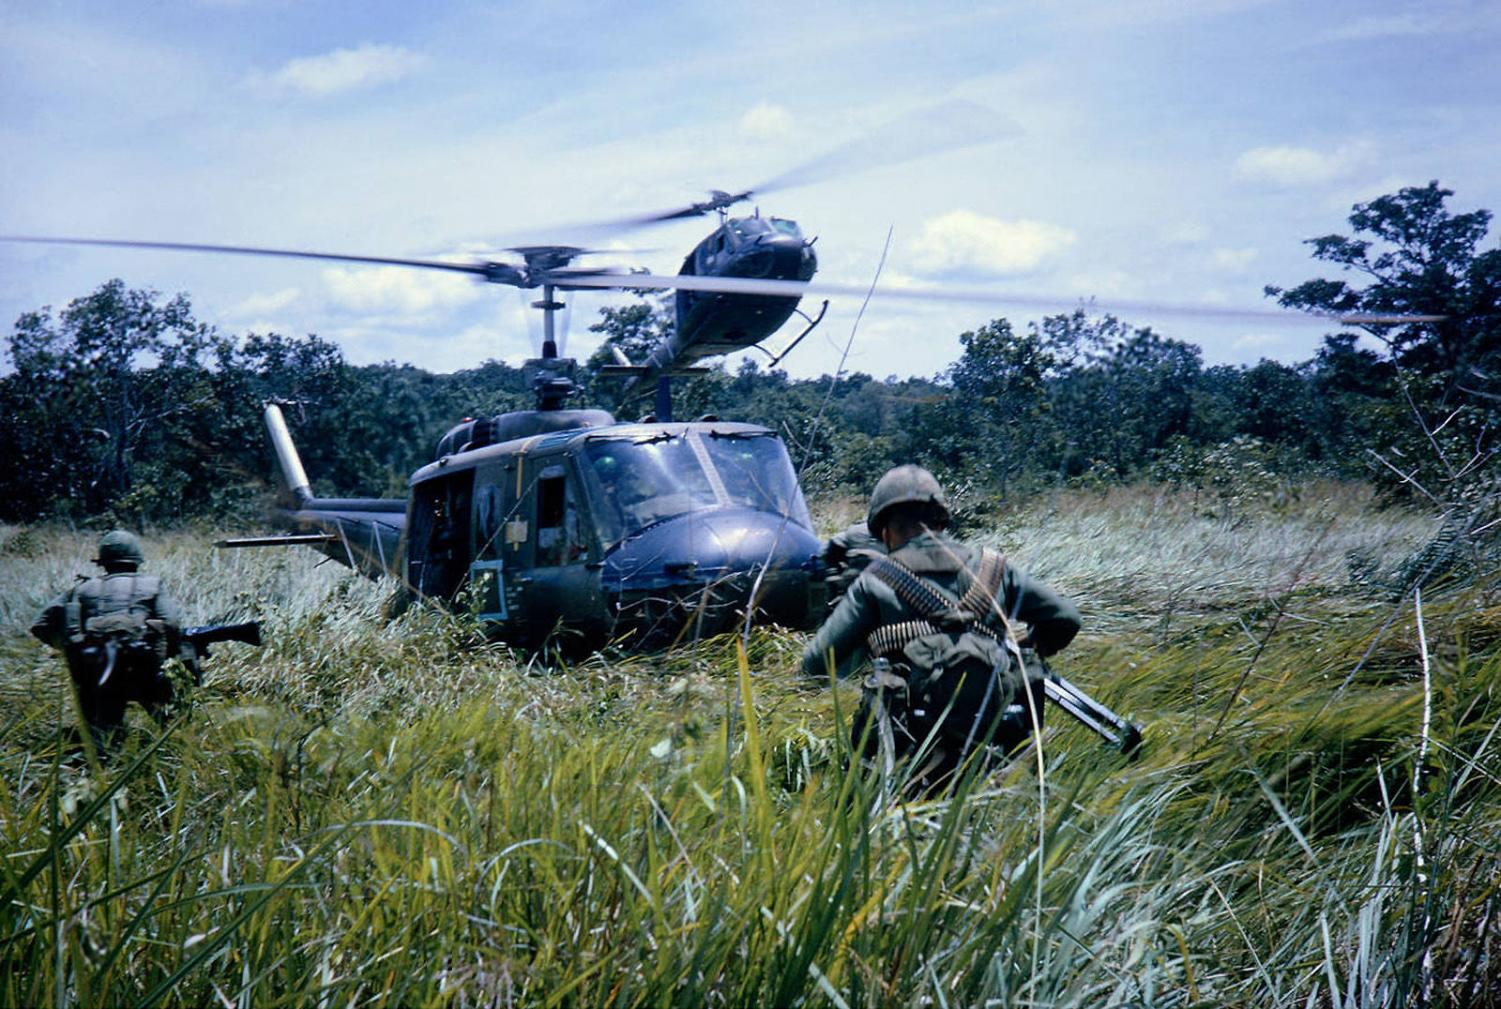 The Vietnam War lasted from 1955 to 1975.